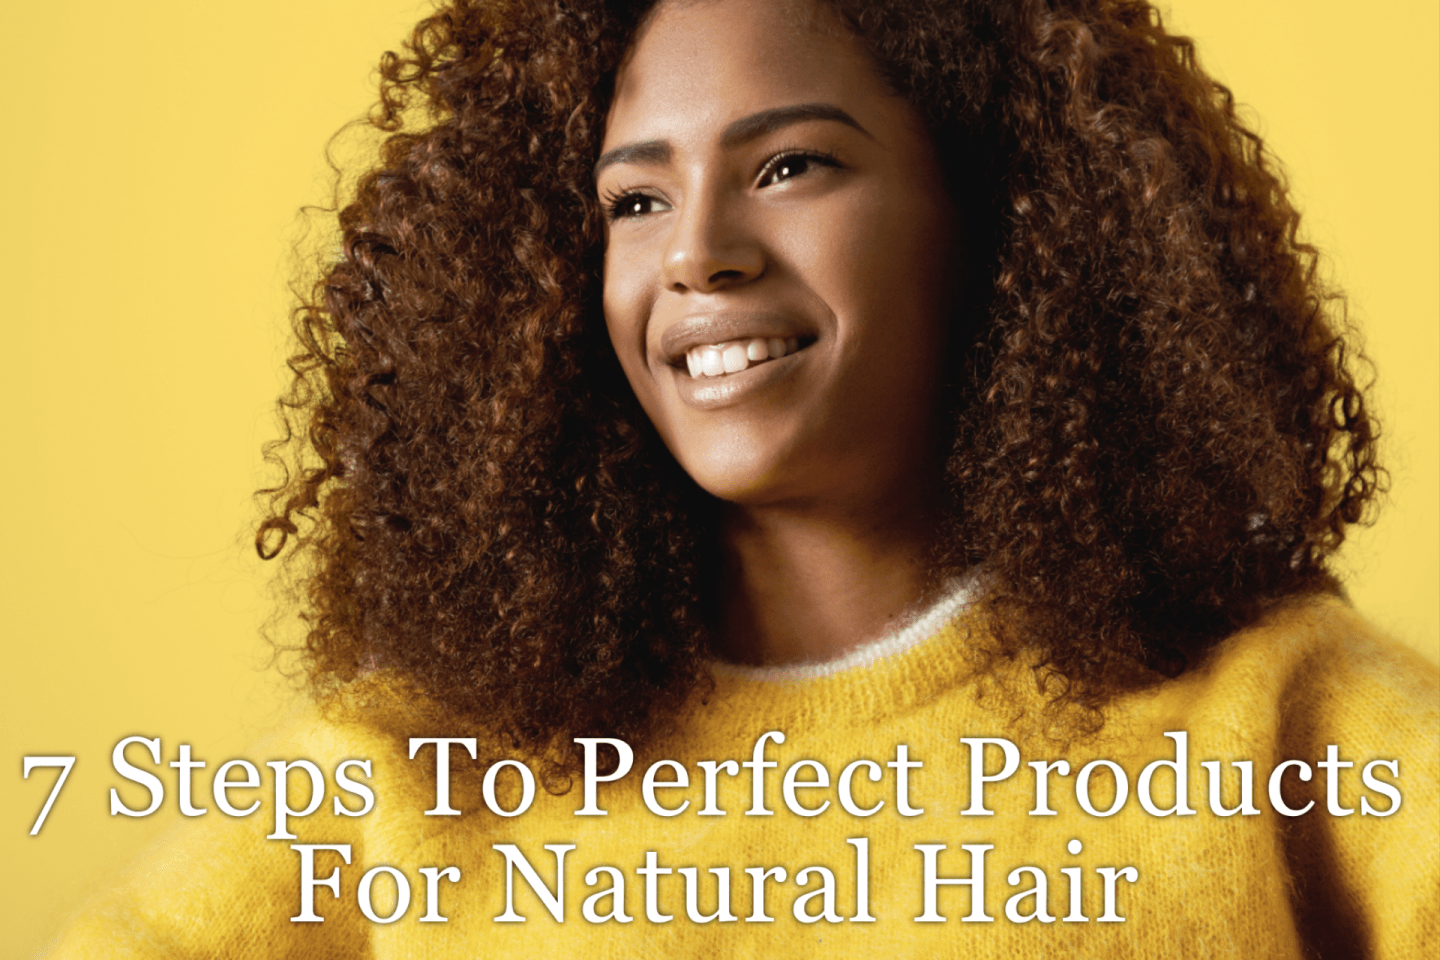 Need Products For Natural Hair That actually work for your hair type? Check out what you need to look for in your tresses to find out what products are best